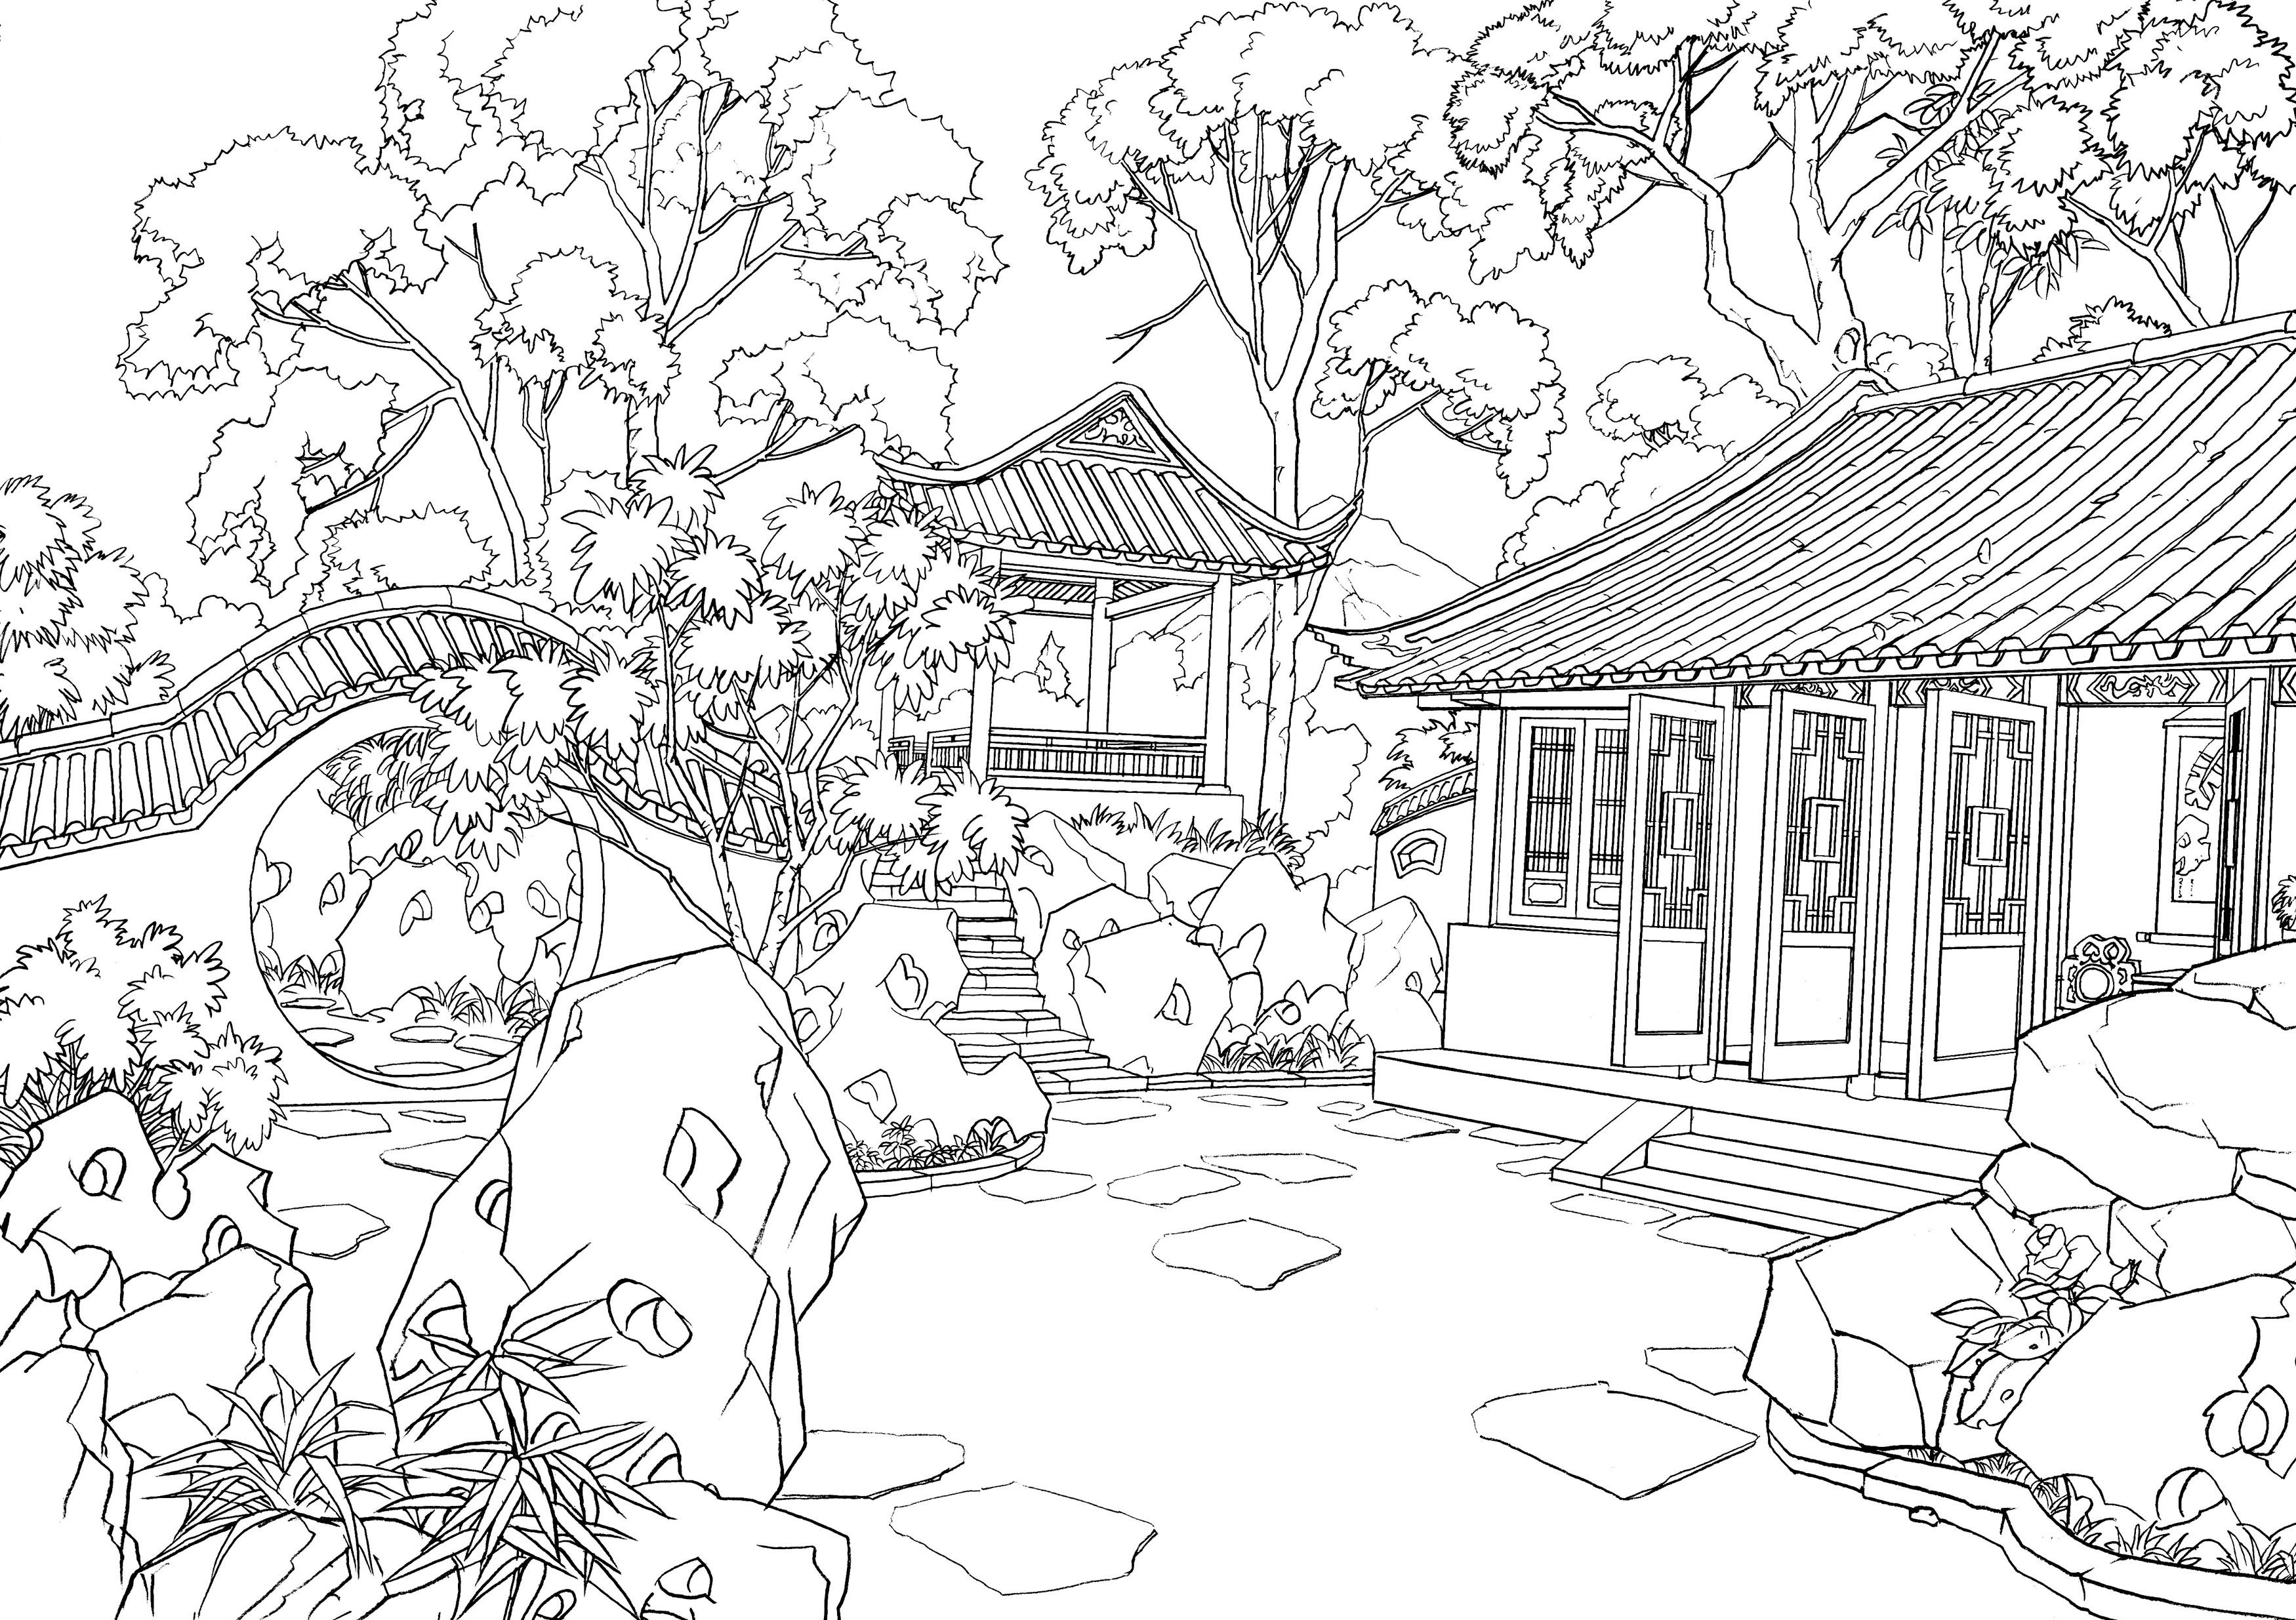 Pin By Hannecart Mel On Colouring Buildings Houses Garden Coloring Pages Coloring Pages Coloring Pictures